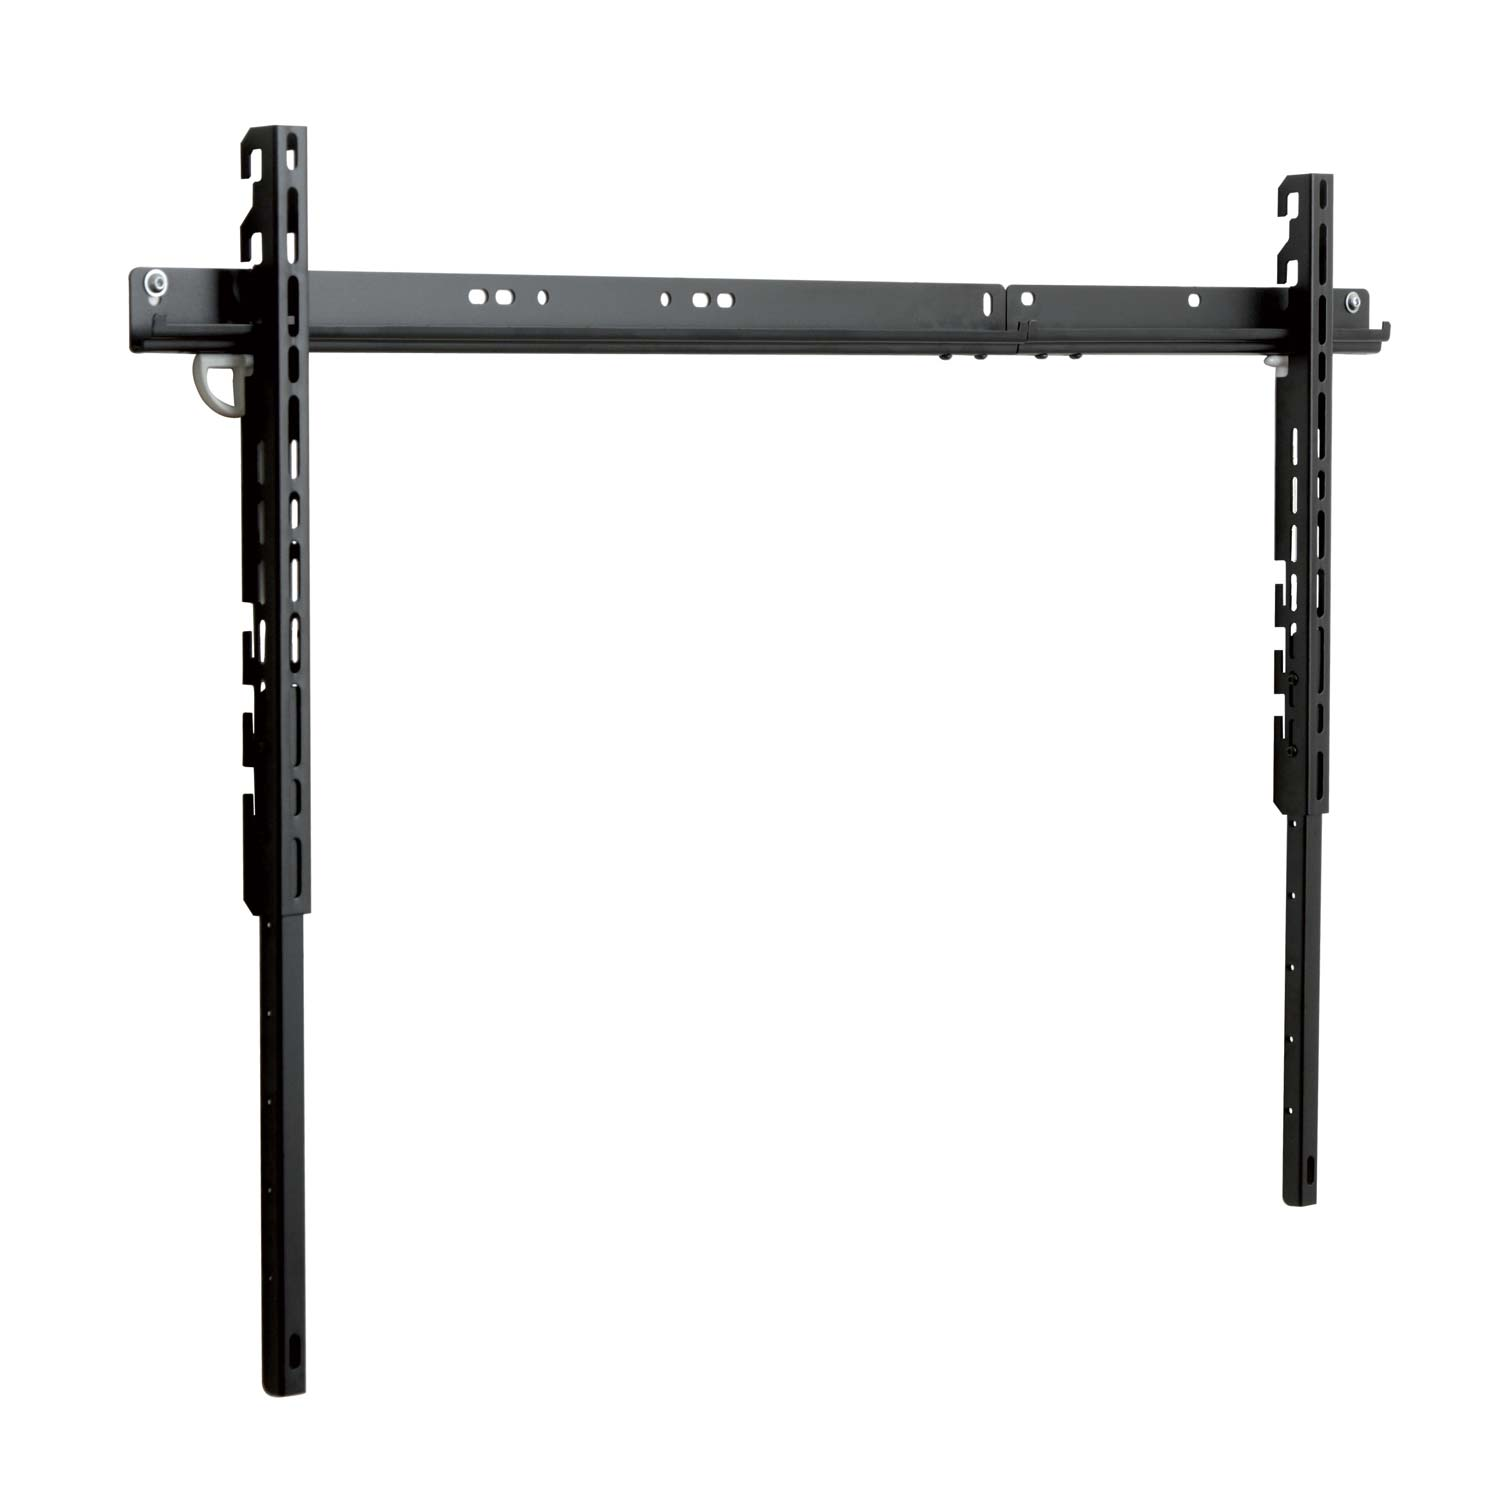 APPLIK FIXED - fixed wall mount for large screens